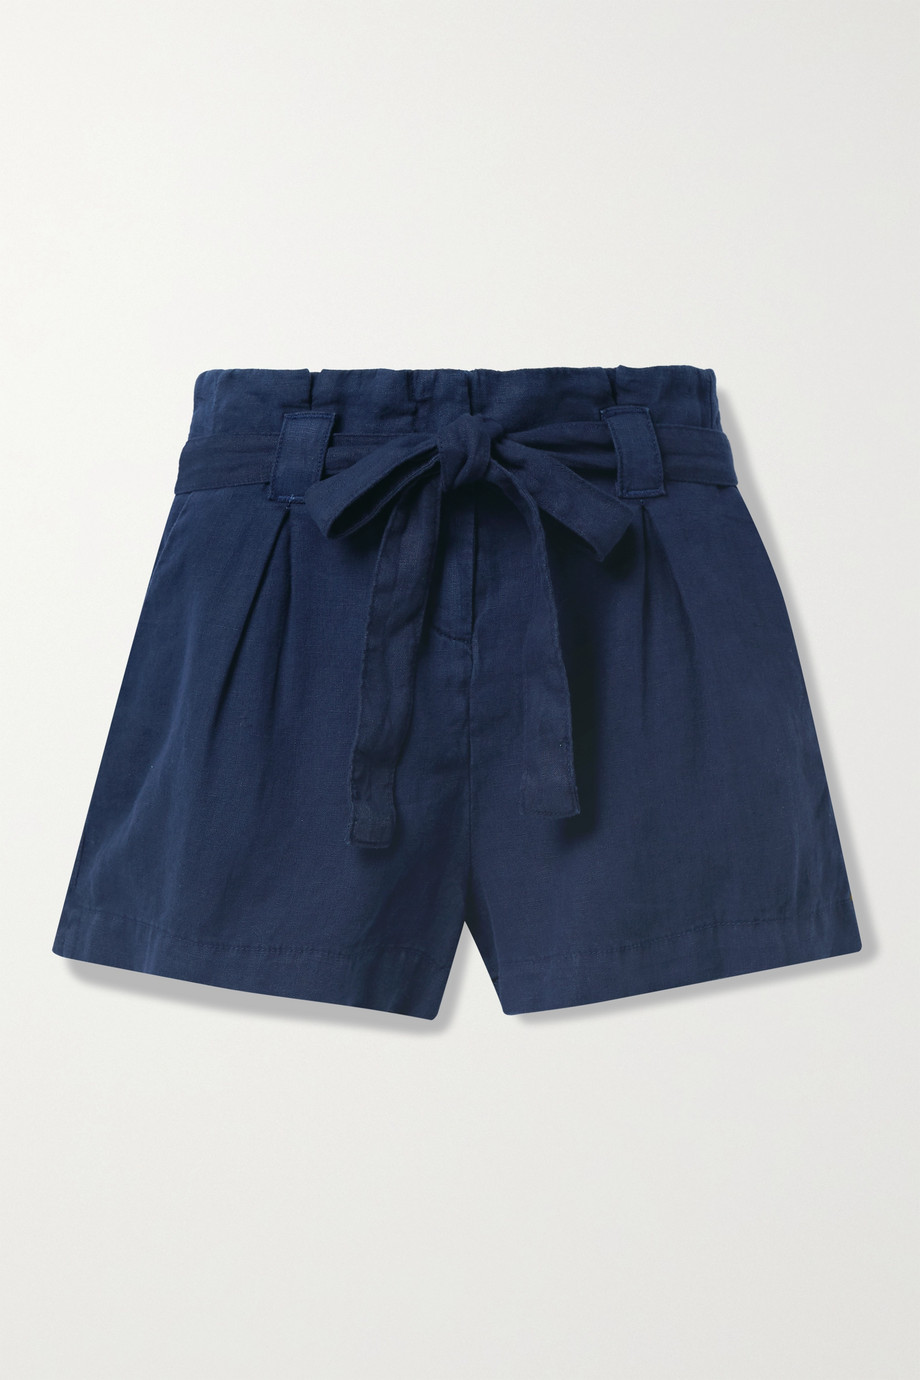 L'Agence Hillary belted linen shorts